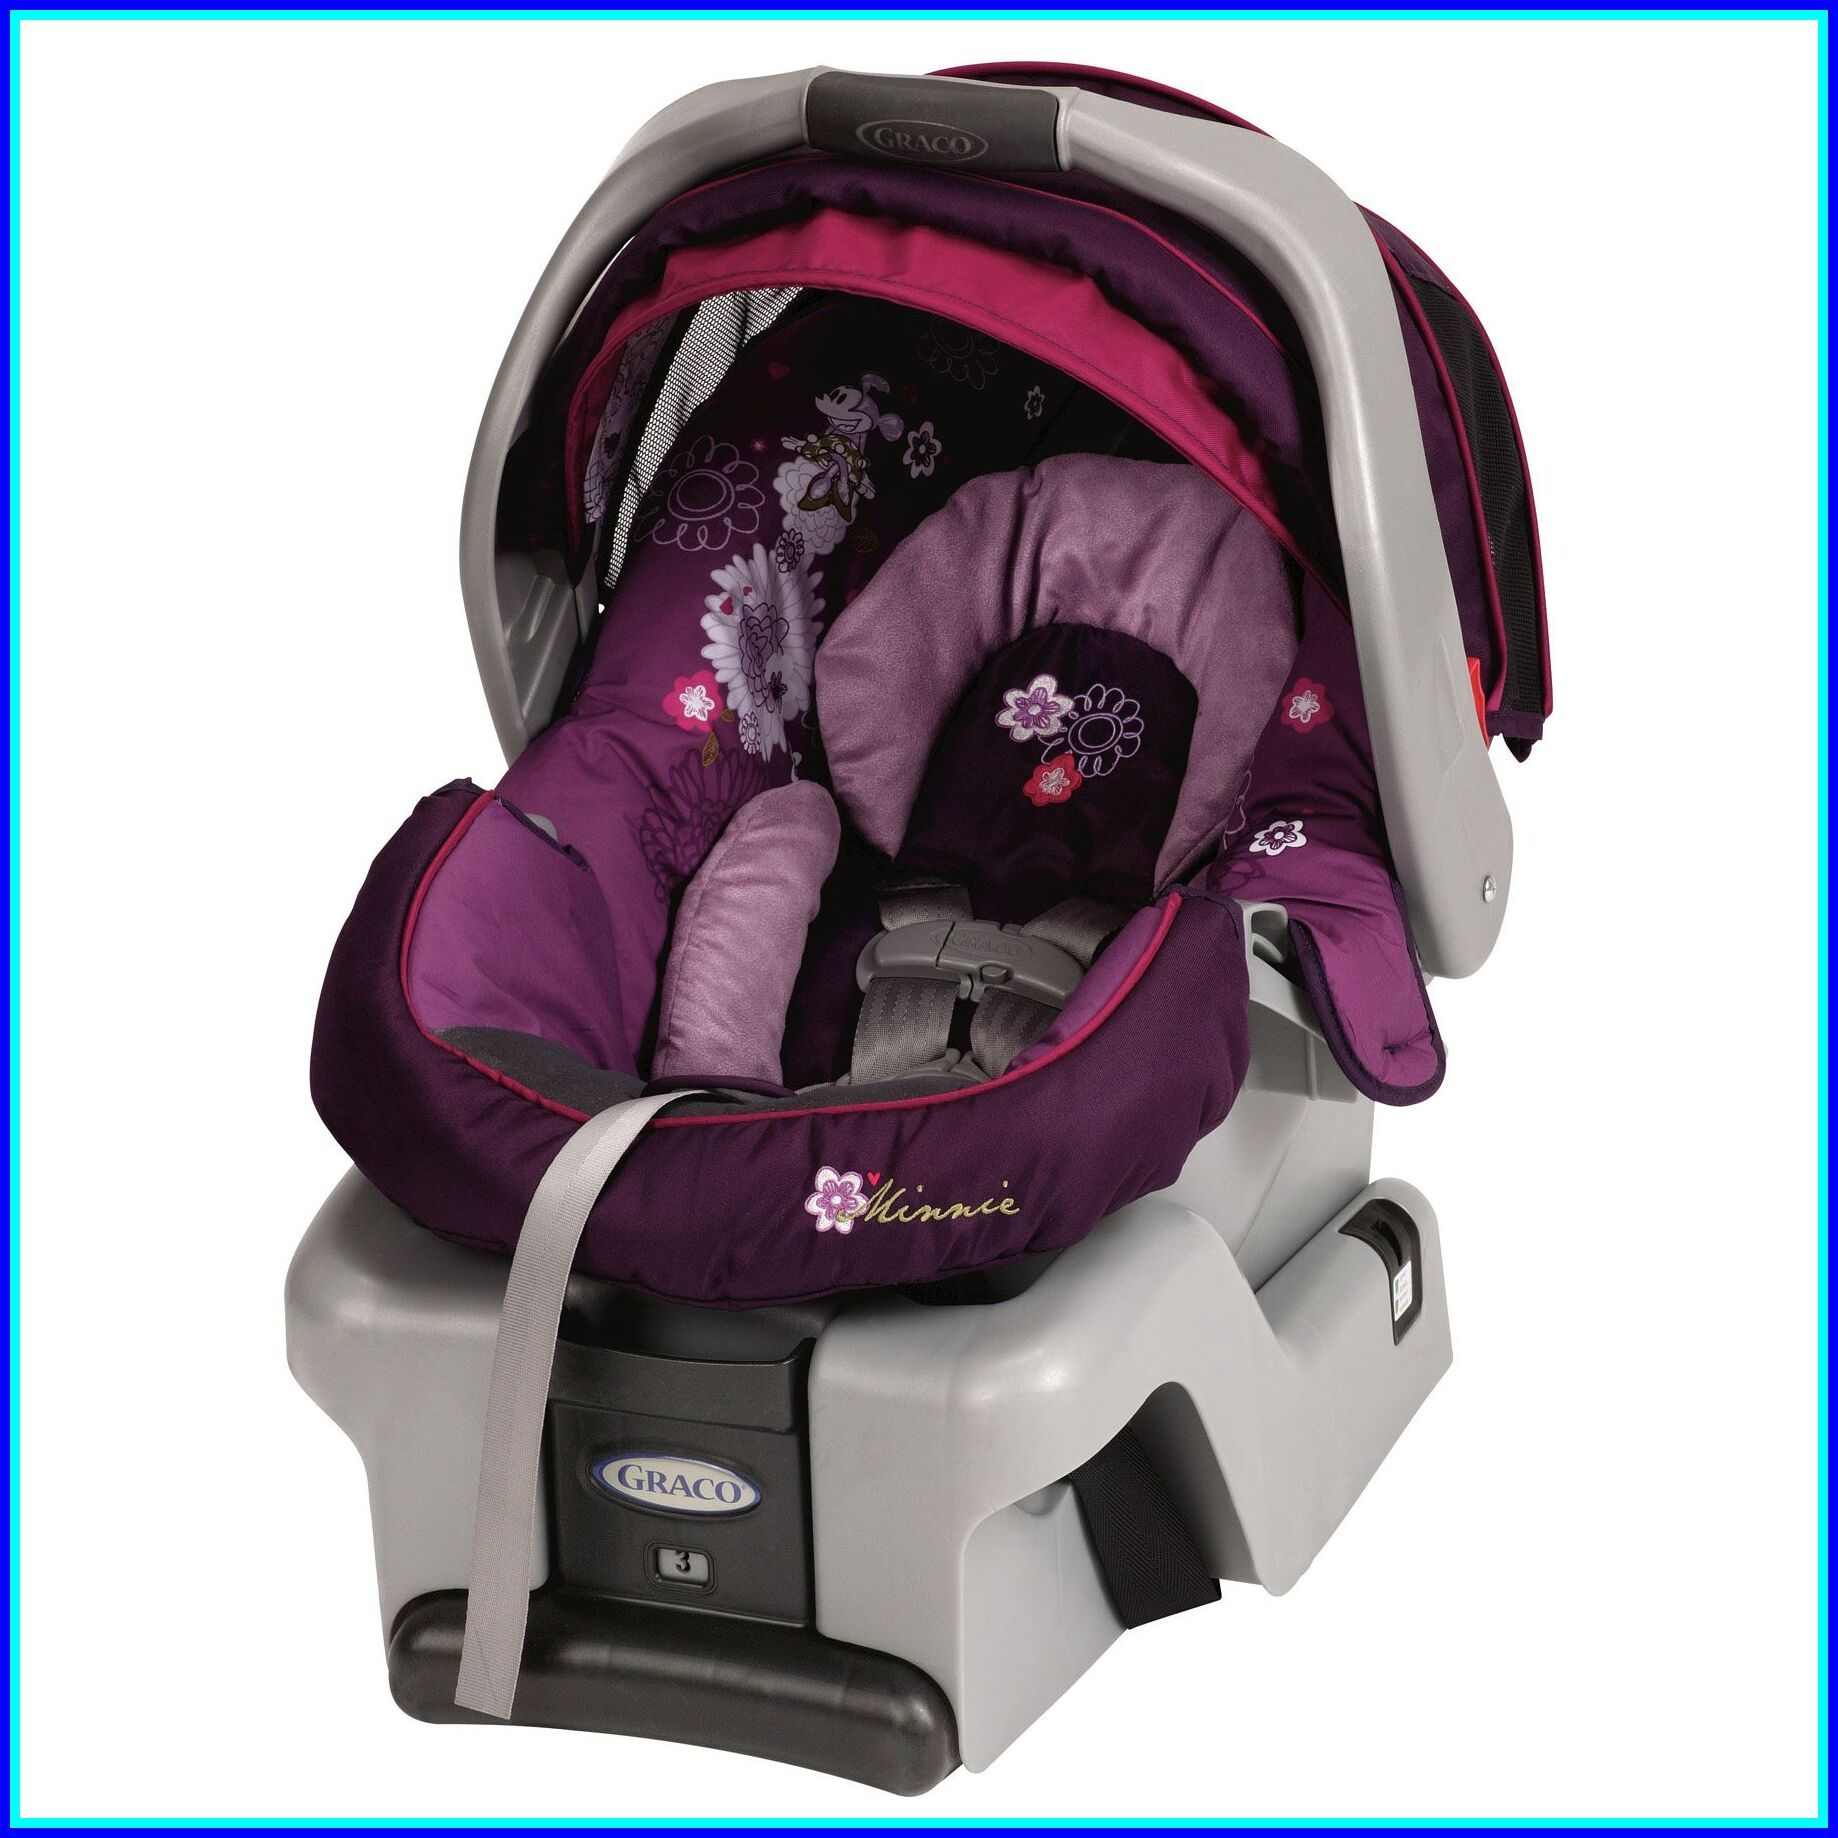 70 reference of stroller car seat purple in 2020 Car